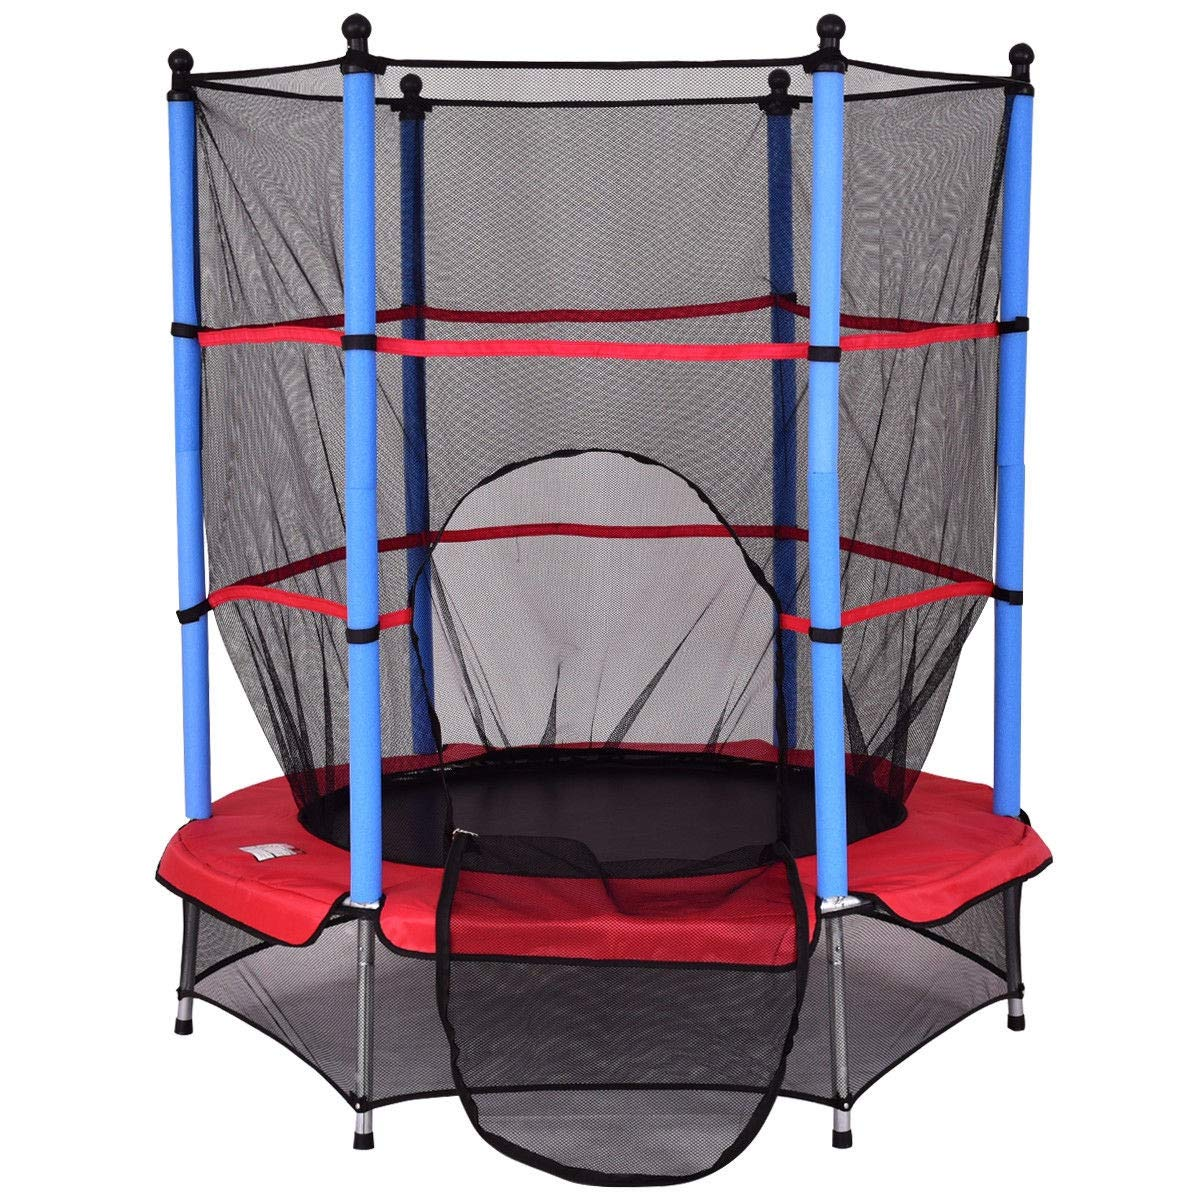 Fun Bounce Fitness 55'' Kids Jumping Trampoline with Safety Pad Enclosure Combo 9rit_Shop by Fun Bounce Fitness 55'' Kids Jumping Trampoline with Safety Pad Enclosure Combo